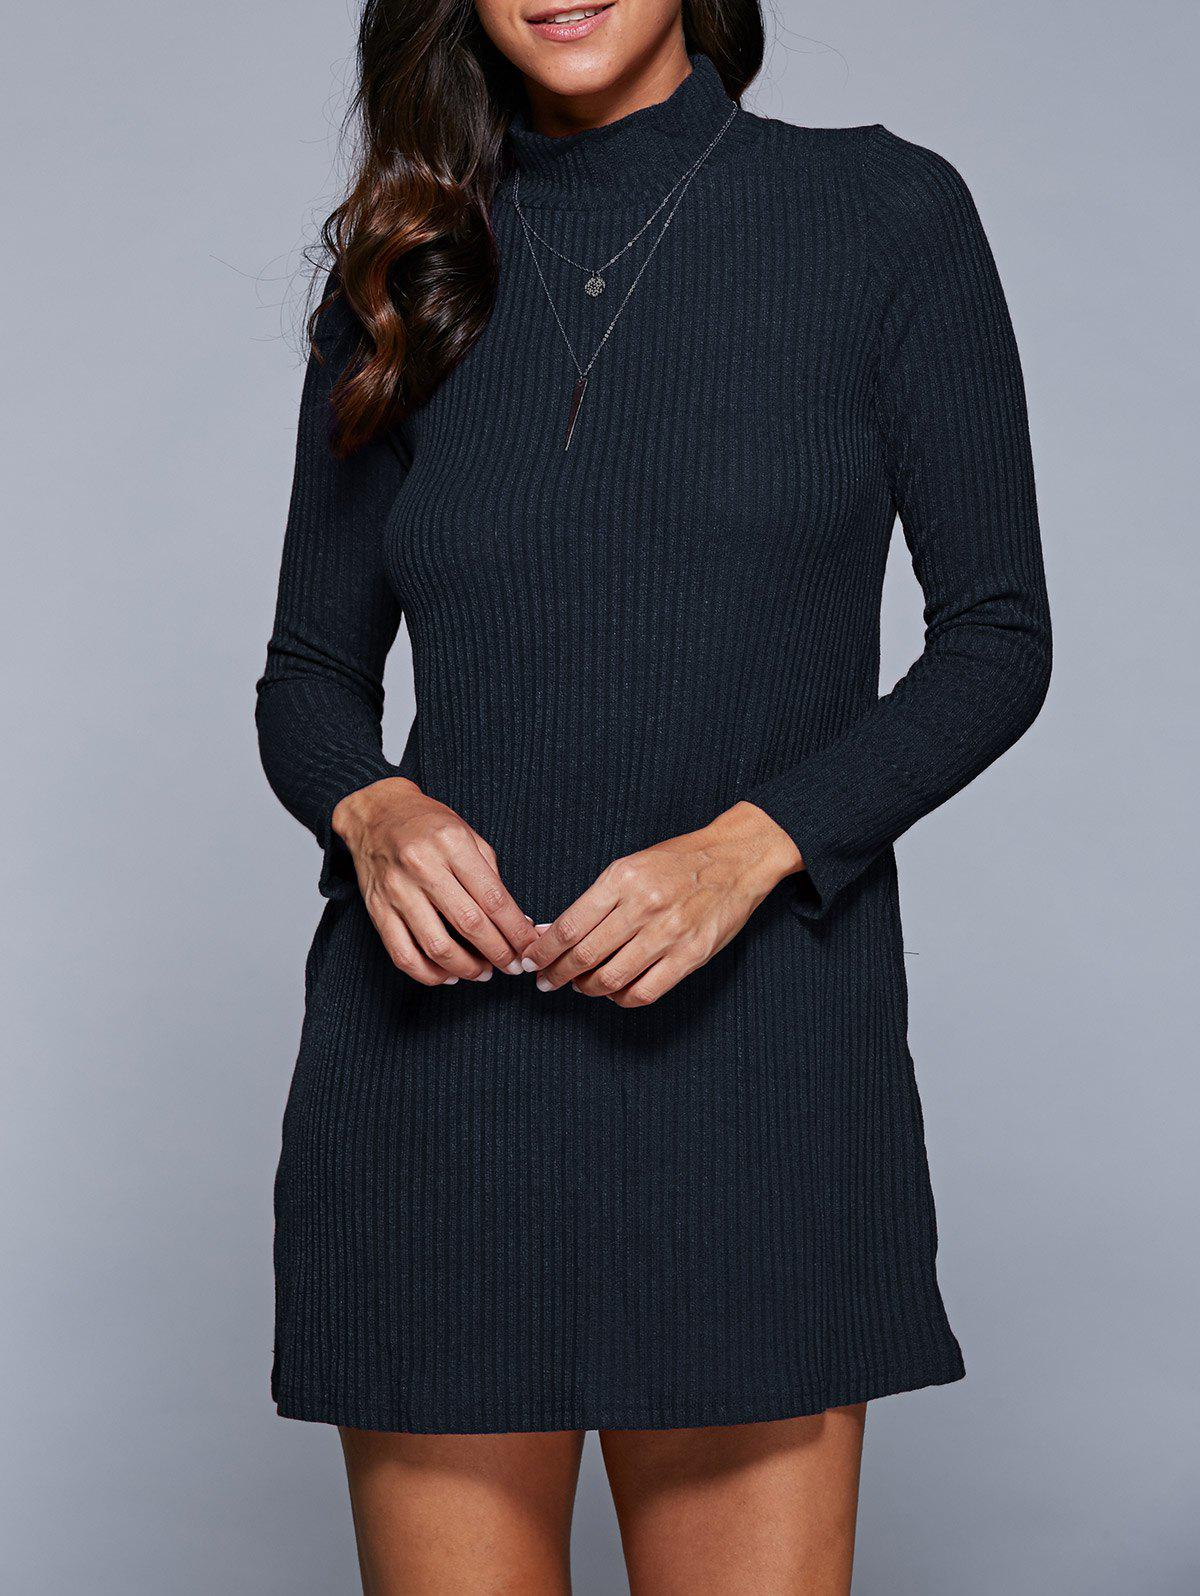 Long Sleeve Mini A Line Sweater Dress - PURPLISH BLUE S